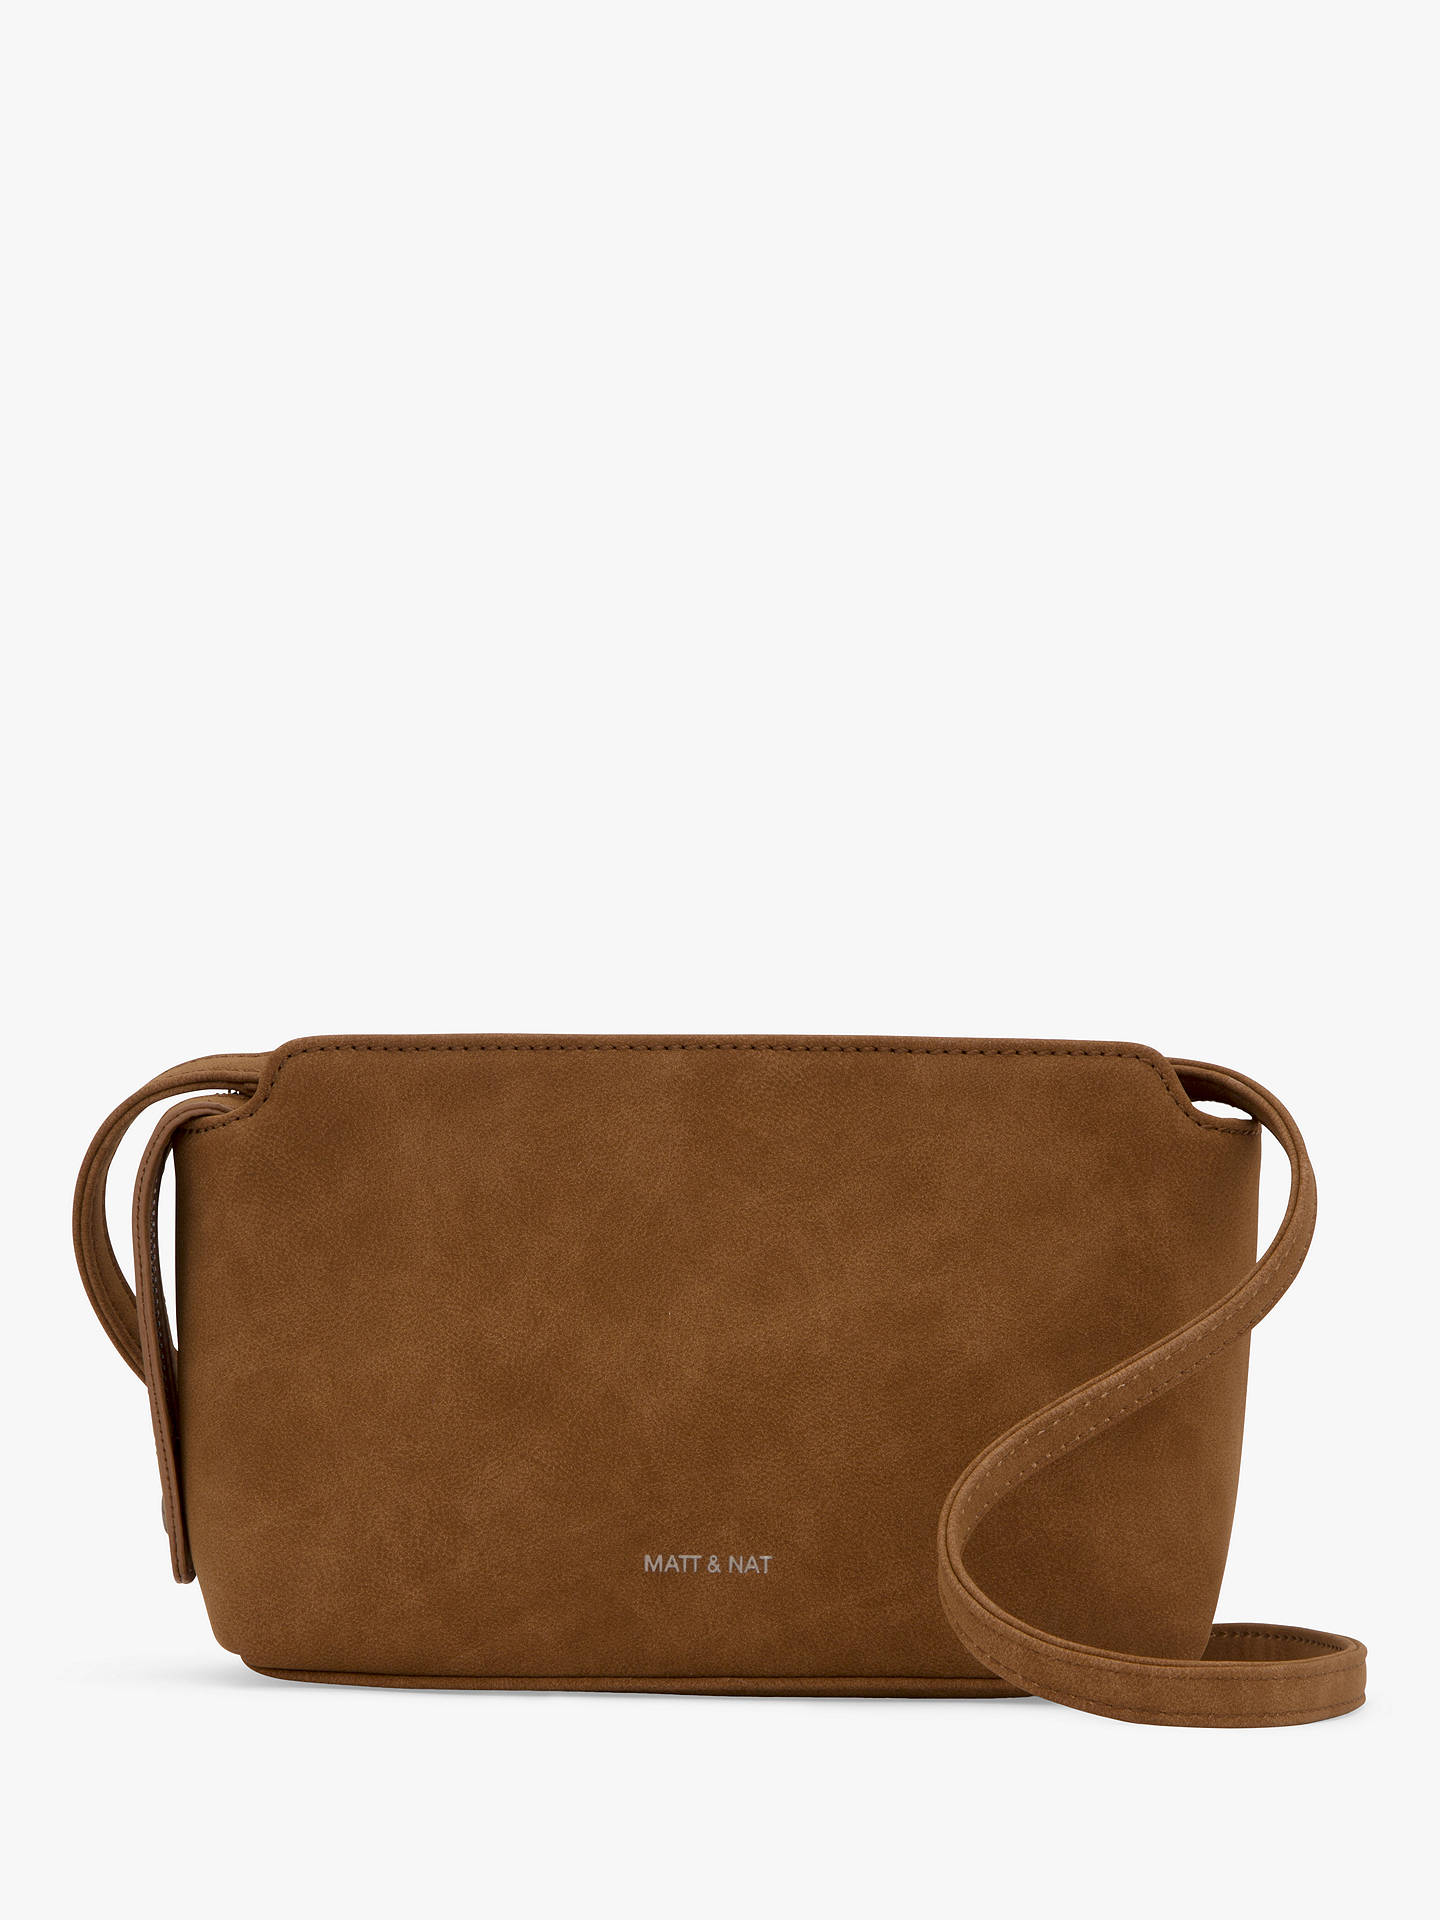 9cd25d6e921 Buy Matt & Nat Raven Vegan Cross Body Bag, Cognac Online at johnlewis. ...